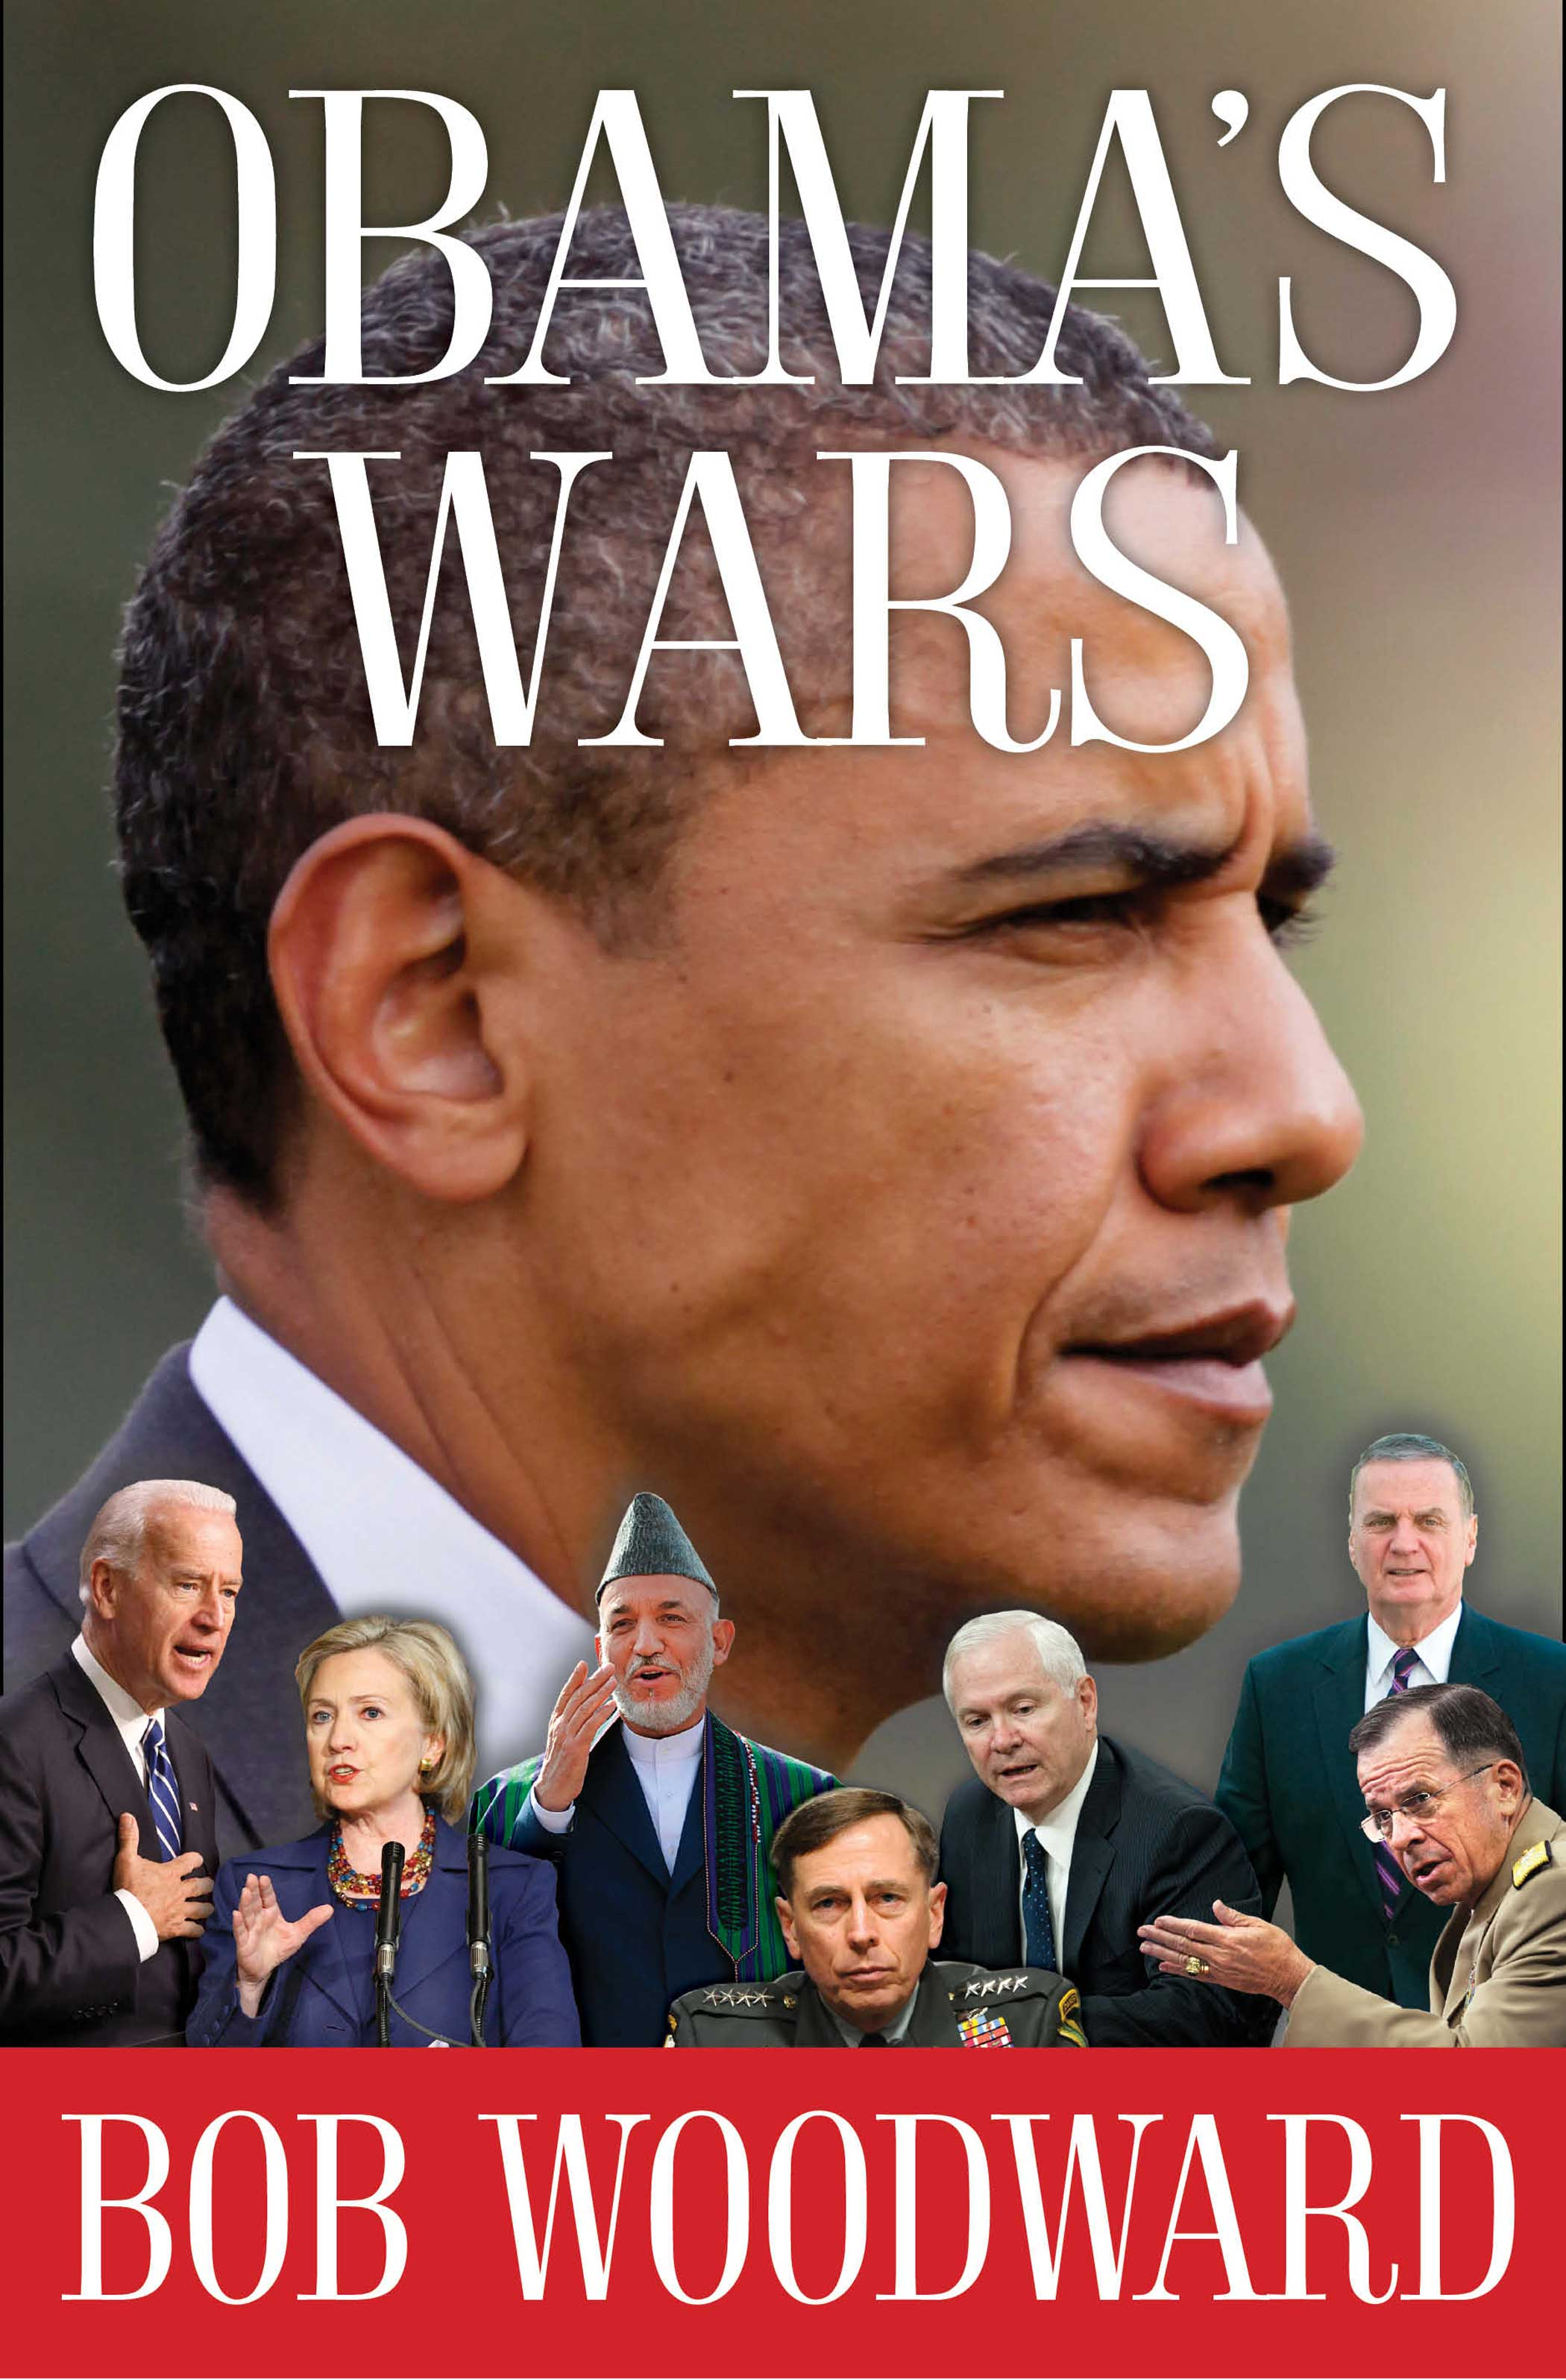 Bob Woodward's Obama's Wars